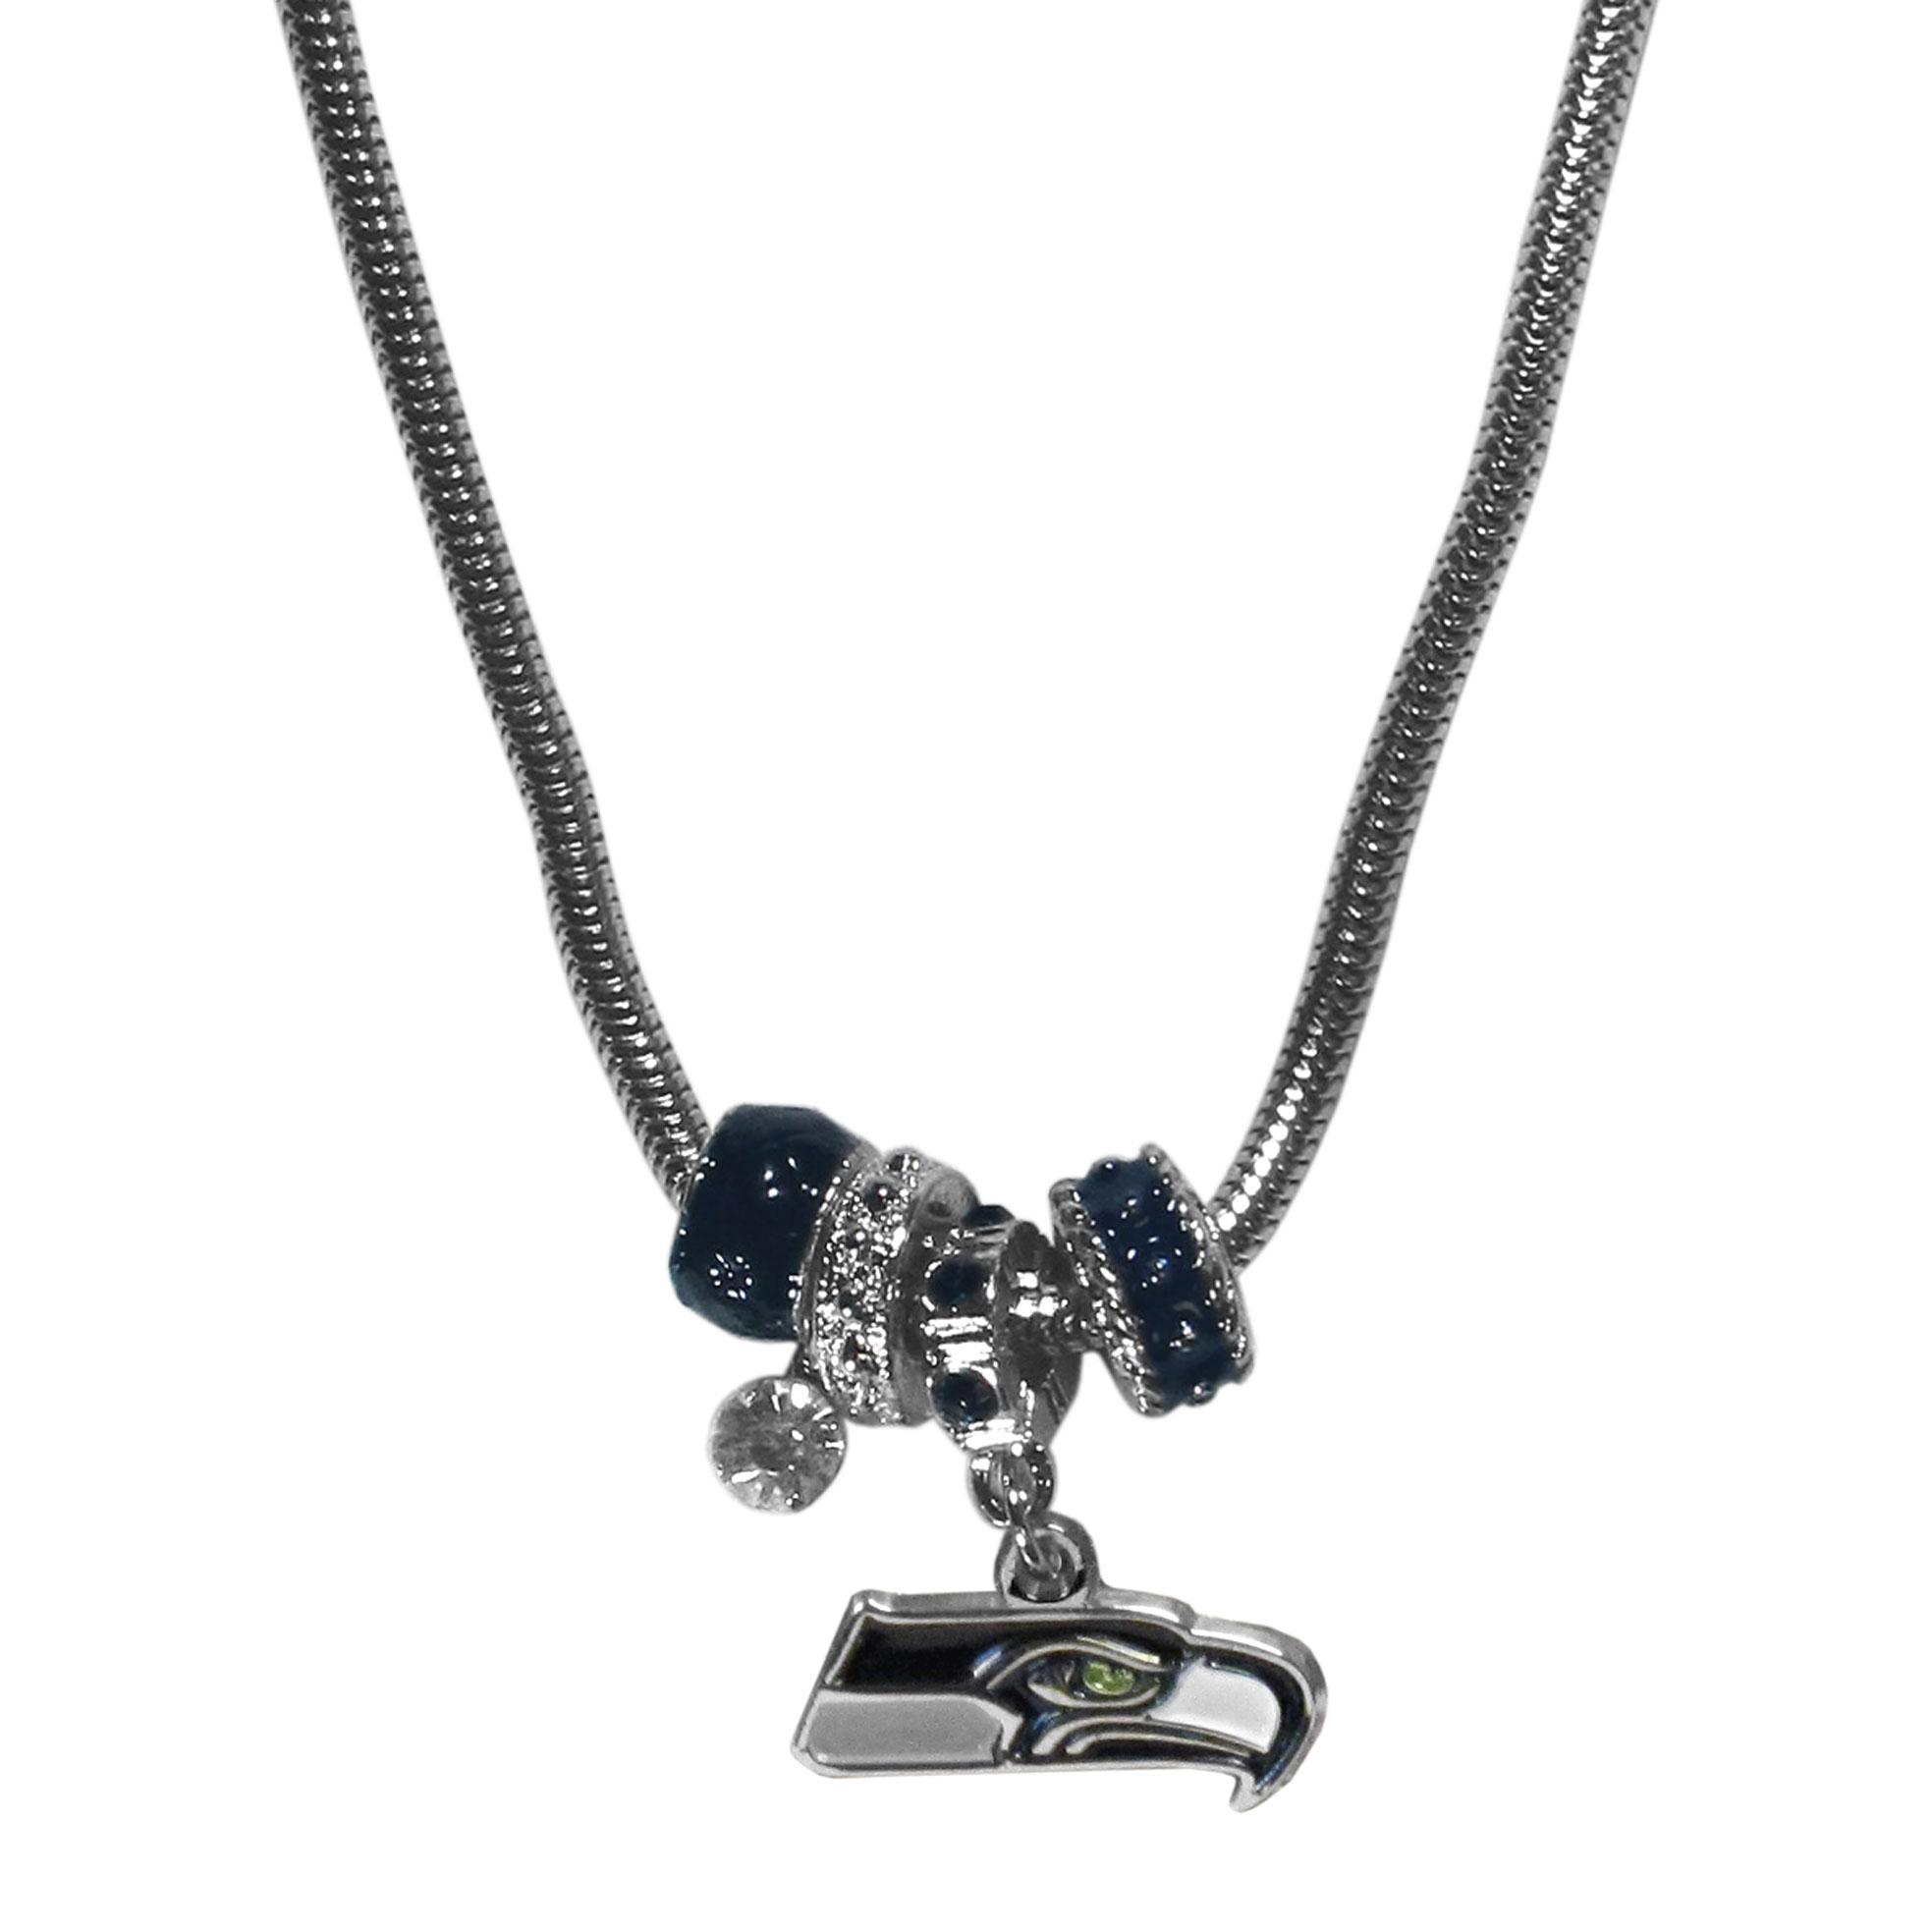 Seattle Seahawks Euro Bead Necklace - We have combined the wildly popular Euro style beads with your favorite team to create our Seattle Seahawks bead necklace. The 18 inch snake chain features 4 Euro beads with enameled team colors and rhinestone accents with a high polish, nickel free charm and rhinestone charm. Perfect way to show off your team pride.